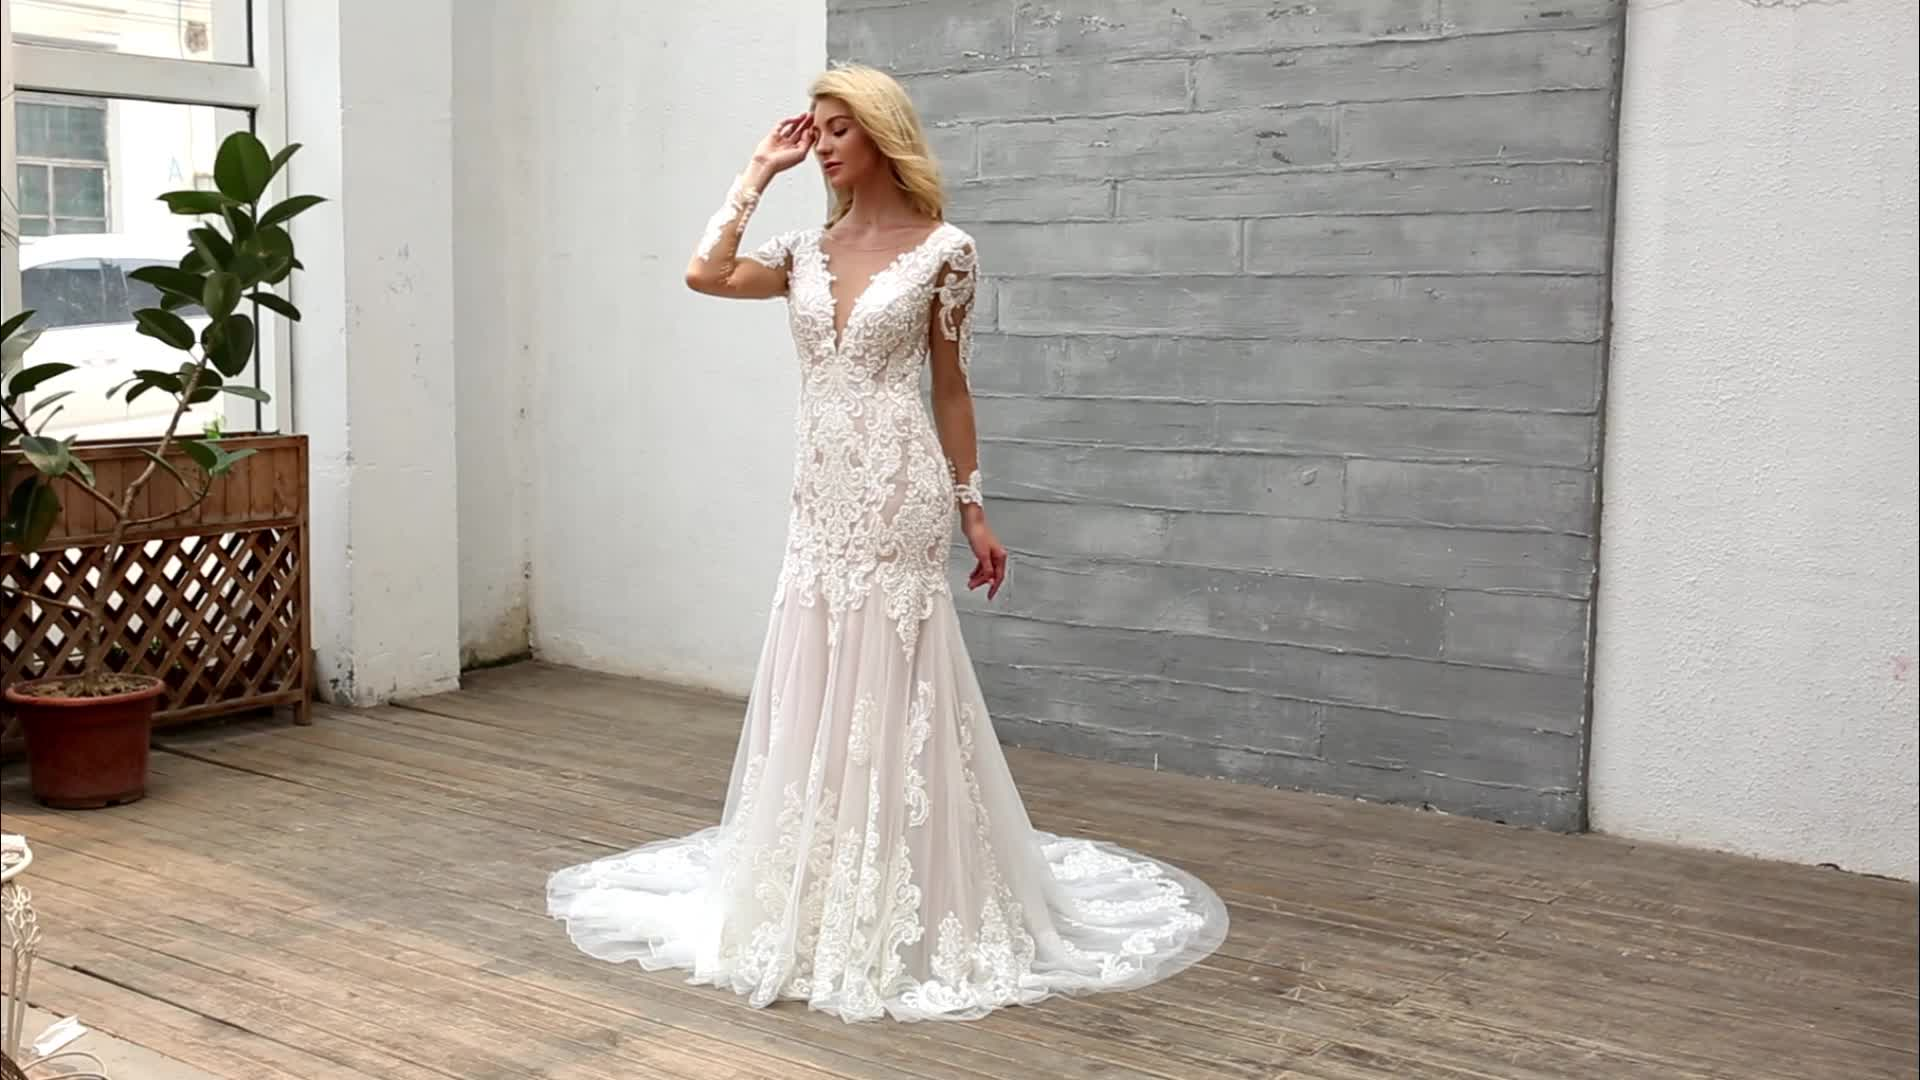 Mermaid wedding dress 2019 china factory high quality v neck long sleeves backless beading lace applique trumpet bridal gown